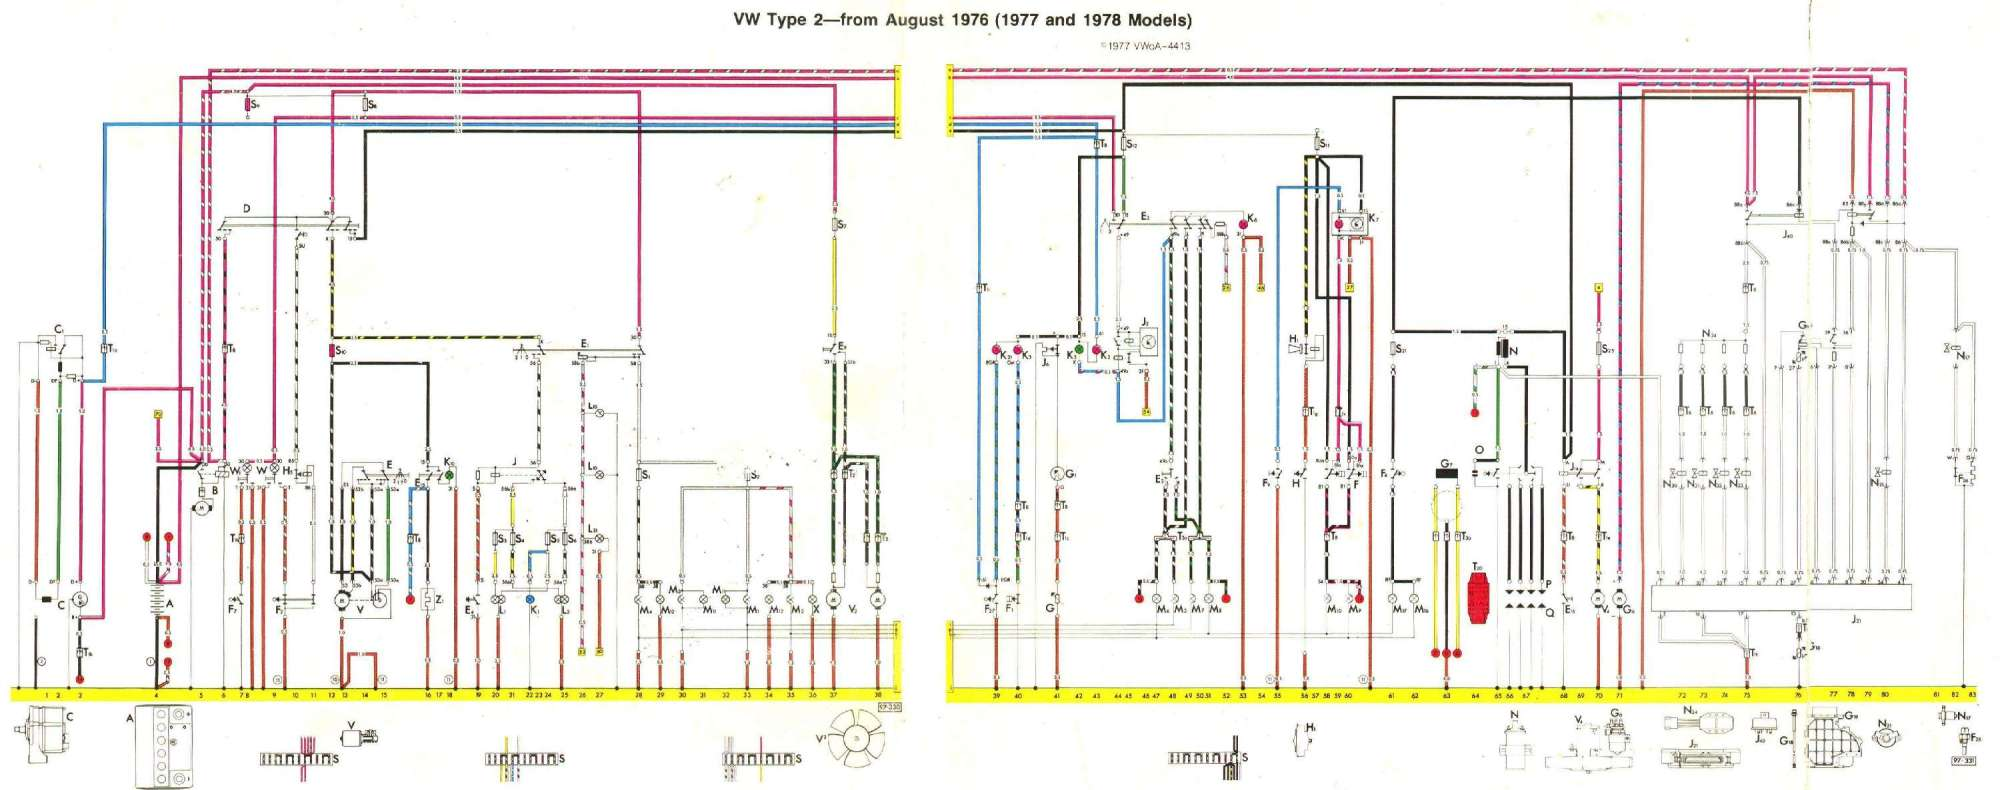 hight resolution of  1996 vw jetta engine diagram com vw bus and other wiring diagrams